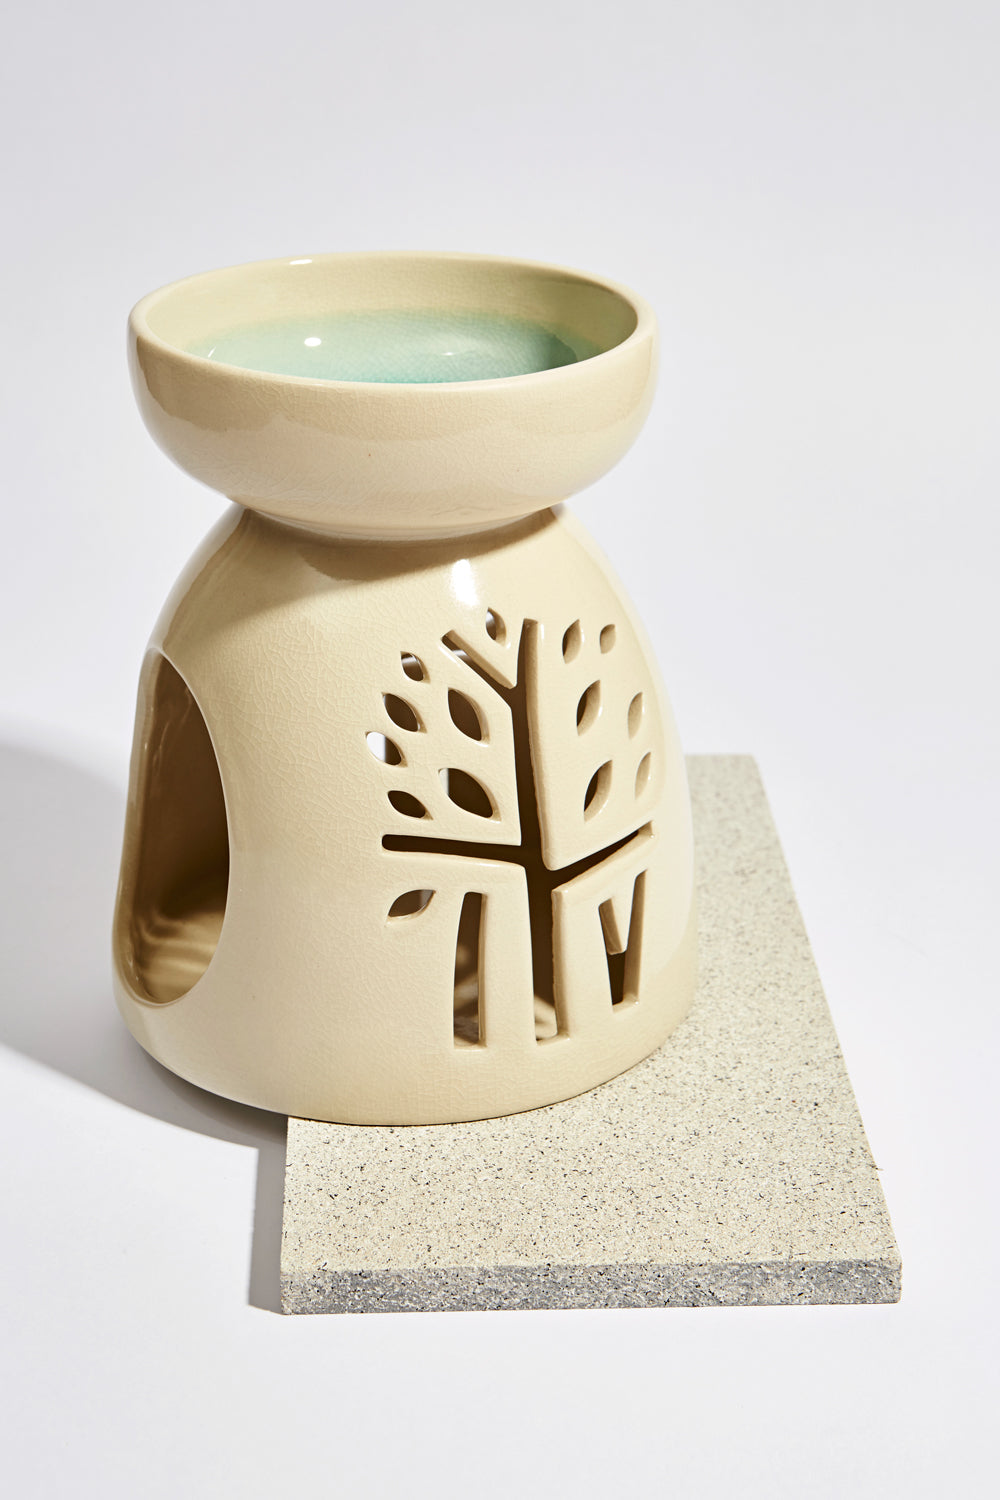 Celadon White Oil Burner - Large - Banyan Tree Gallery